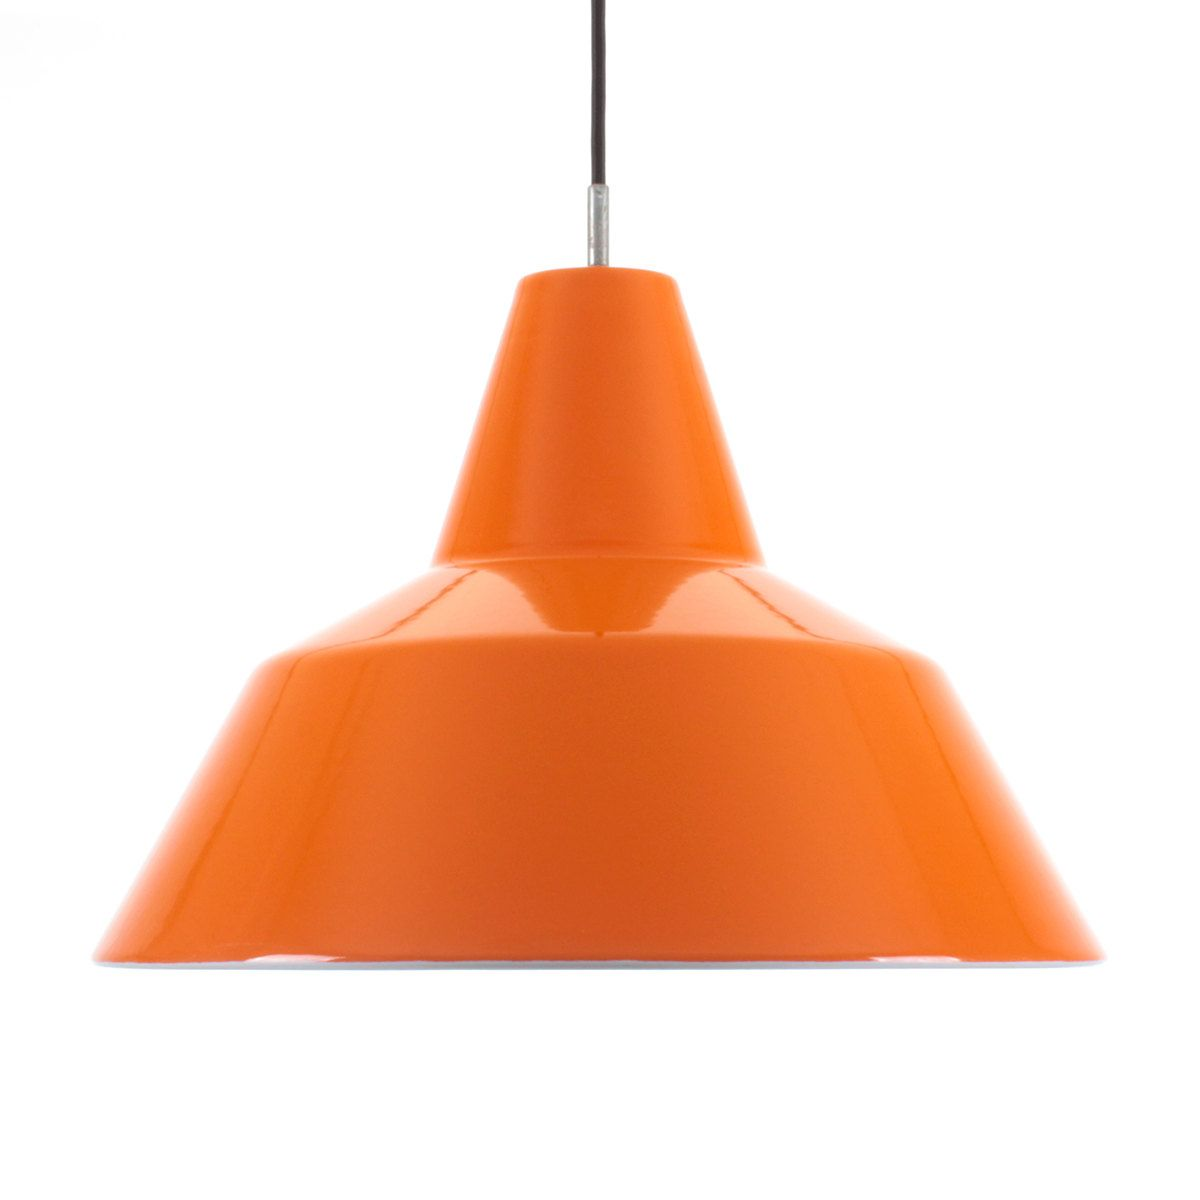 Orange hanging lamp - Enamel Pendant By Louis Poulsen 1960s Iconic Danish Vintage Design Mid Century Orange Hanging Lamp In Excellent Vintage Condition